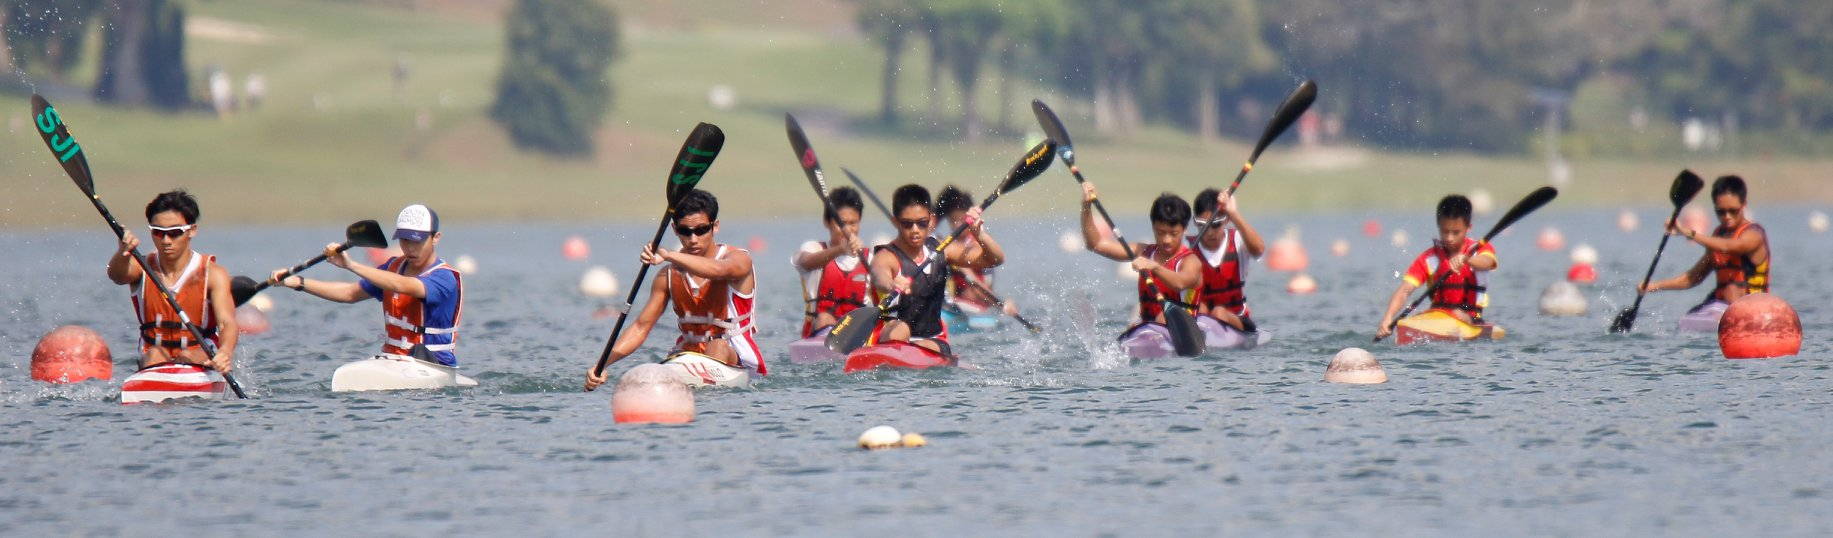 2020 Singapore Canoe Sprint and Paracanoe Championships - Postponed (Date TBC)